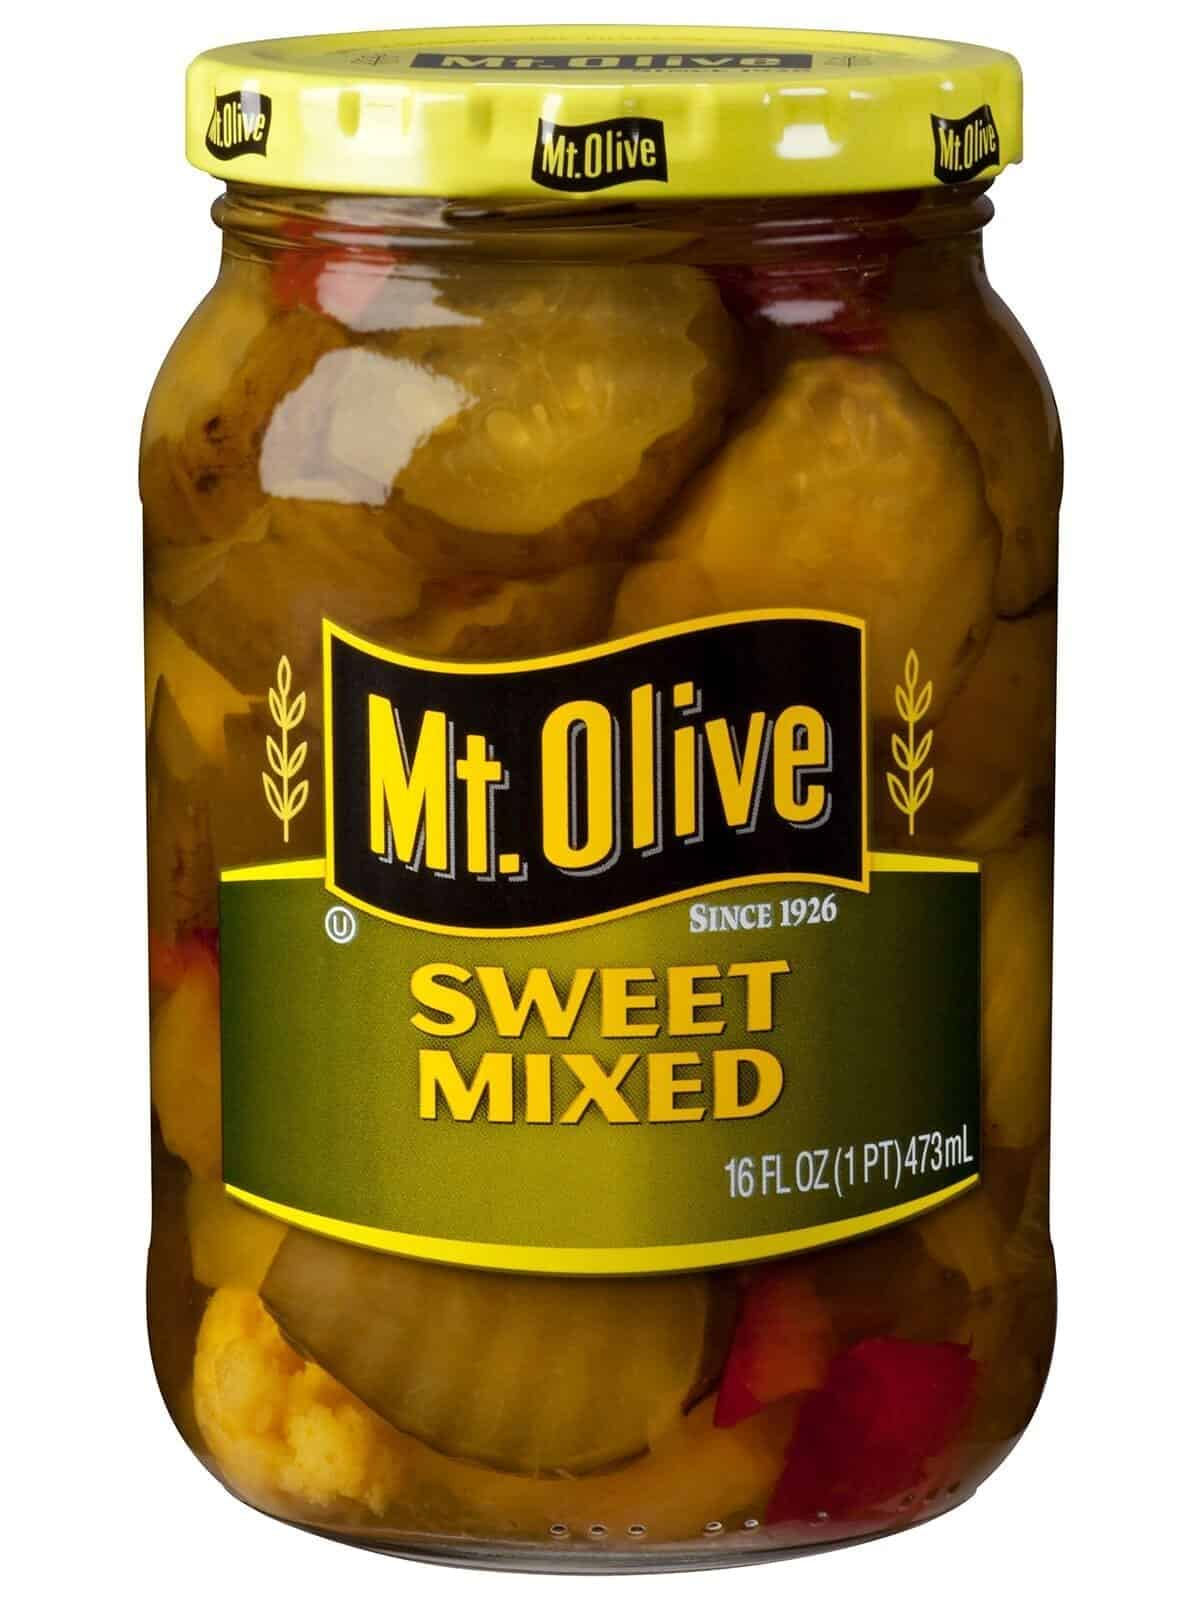 Sweet Mixed Pickles - Mt Olive Pickles